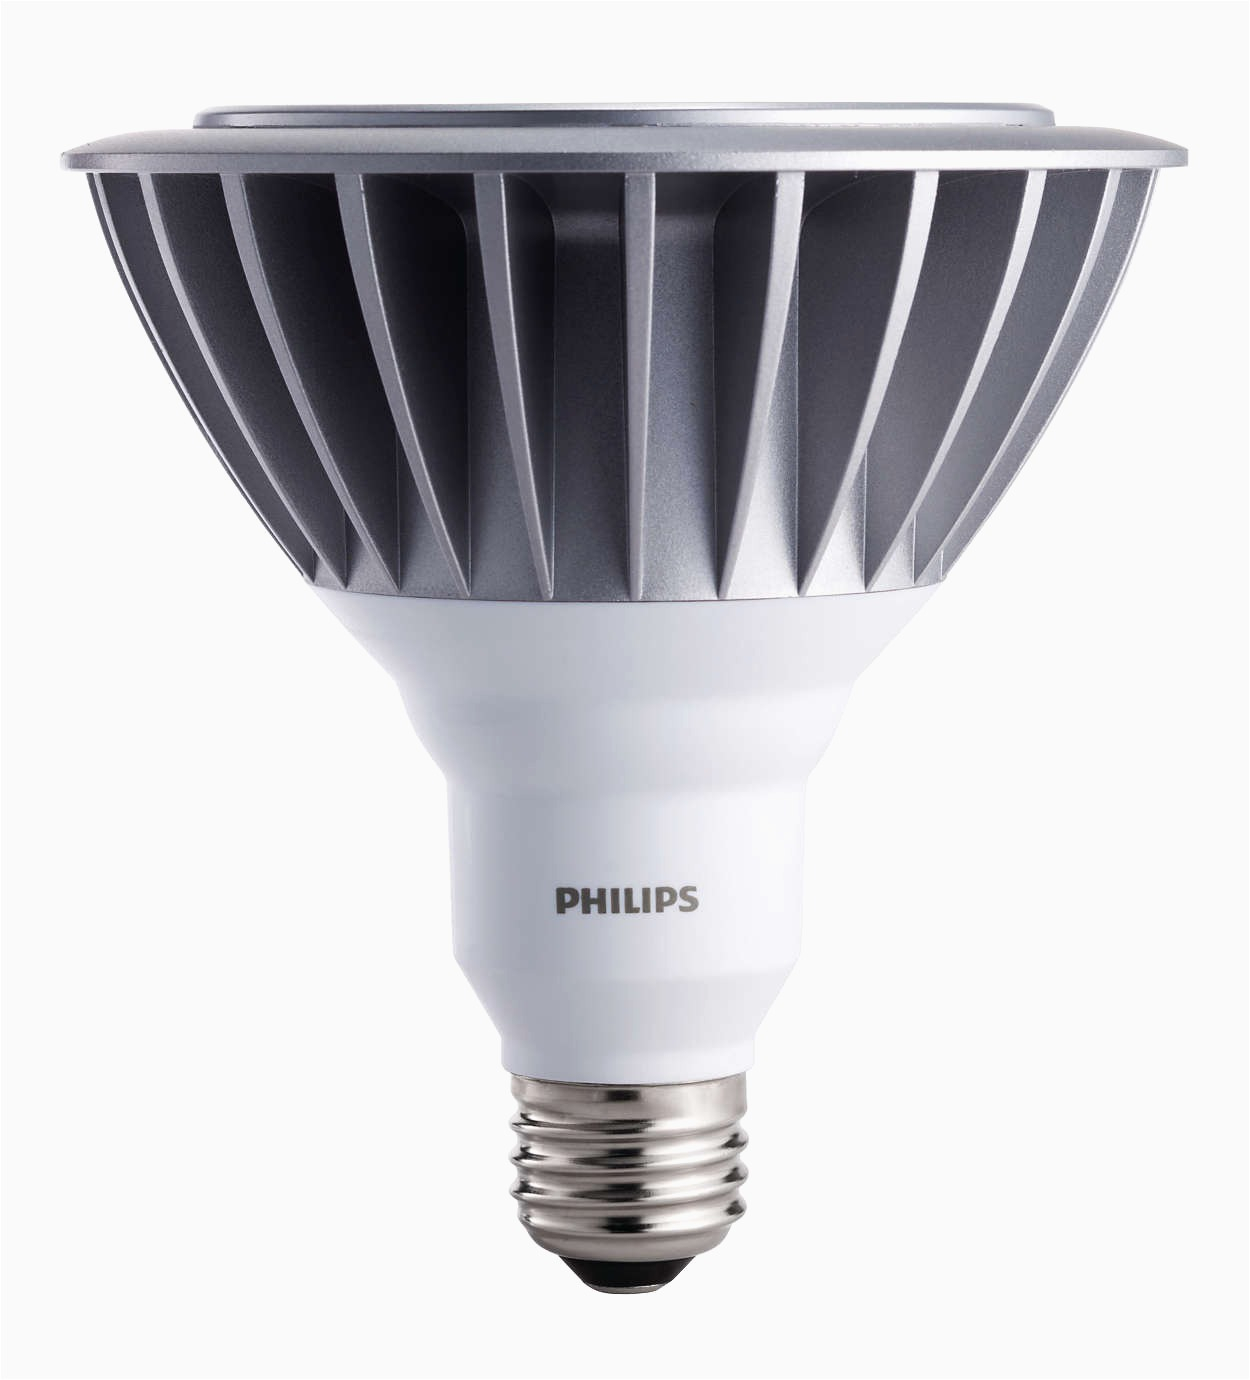 Best energy efficient light bulbs for outdoors bulbs ideas led flood light bulbs outdoor hd ambientled energy saving outdoor in size 1250 x 1380 aloadofball Images